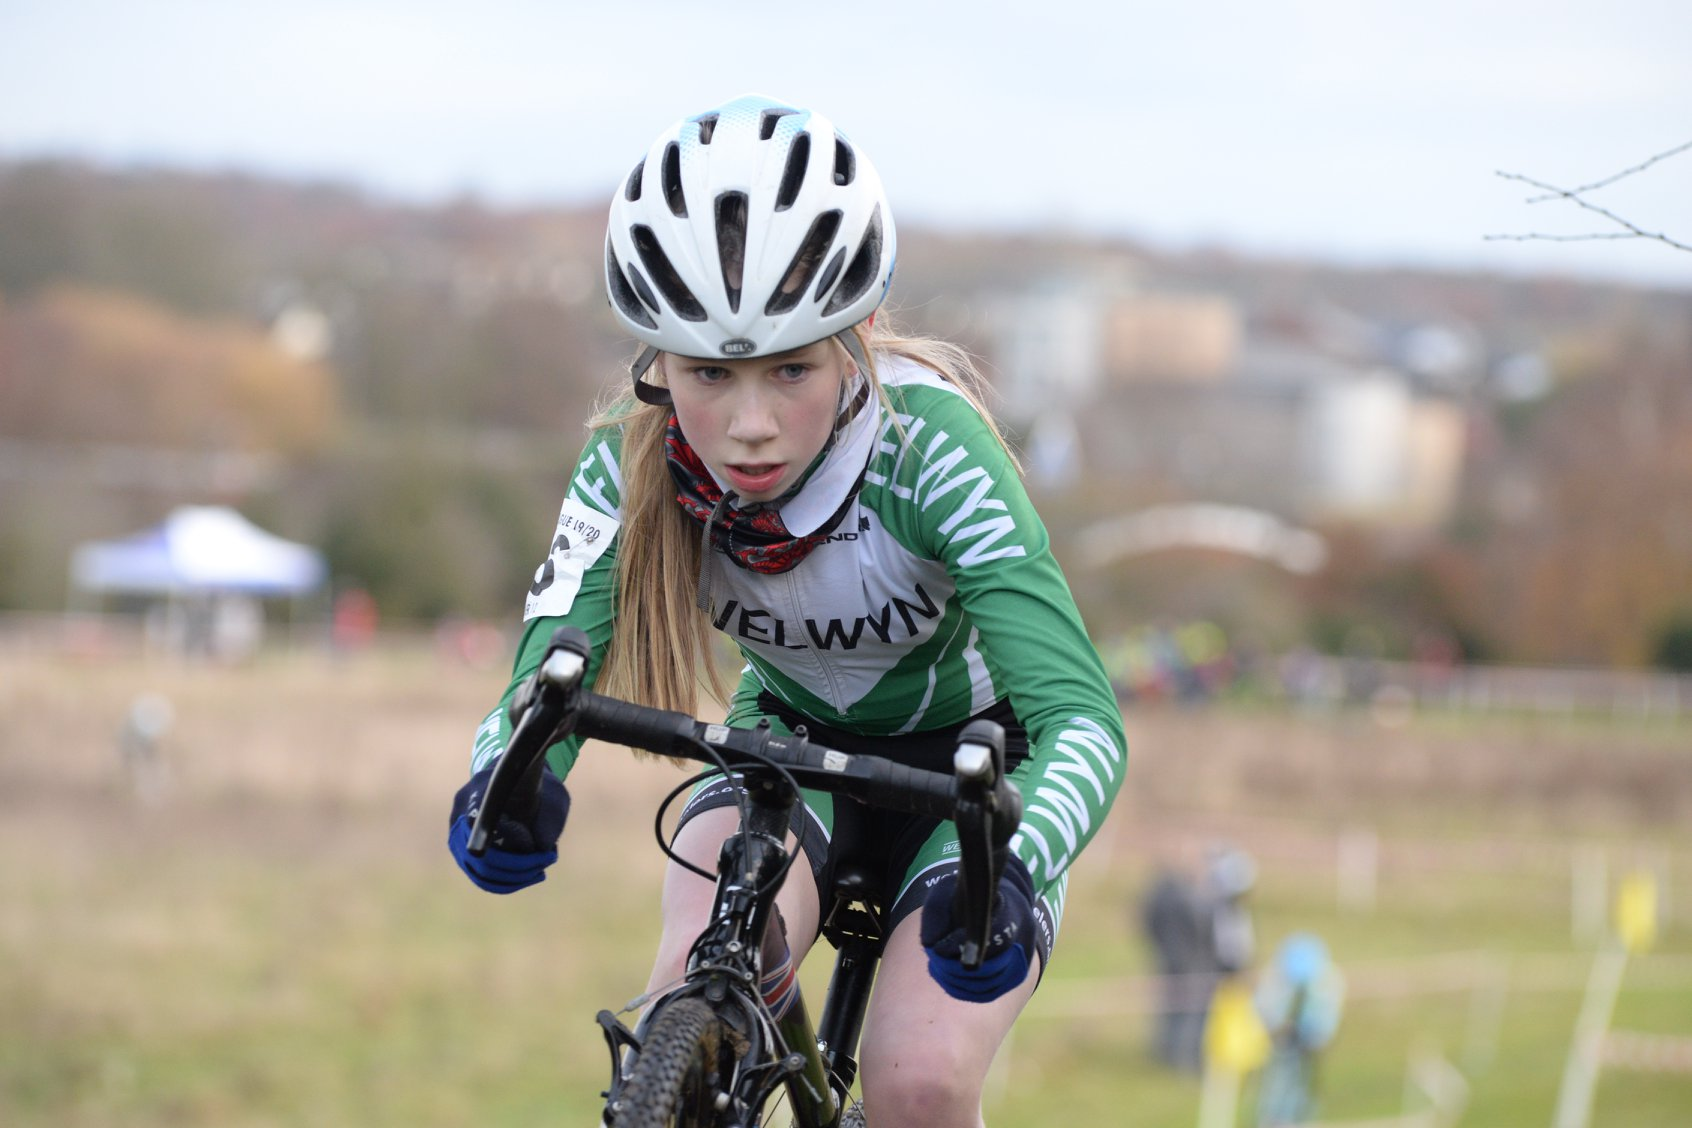 Megan Hughes – Girl Power at Hilly fields